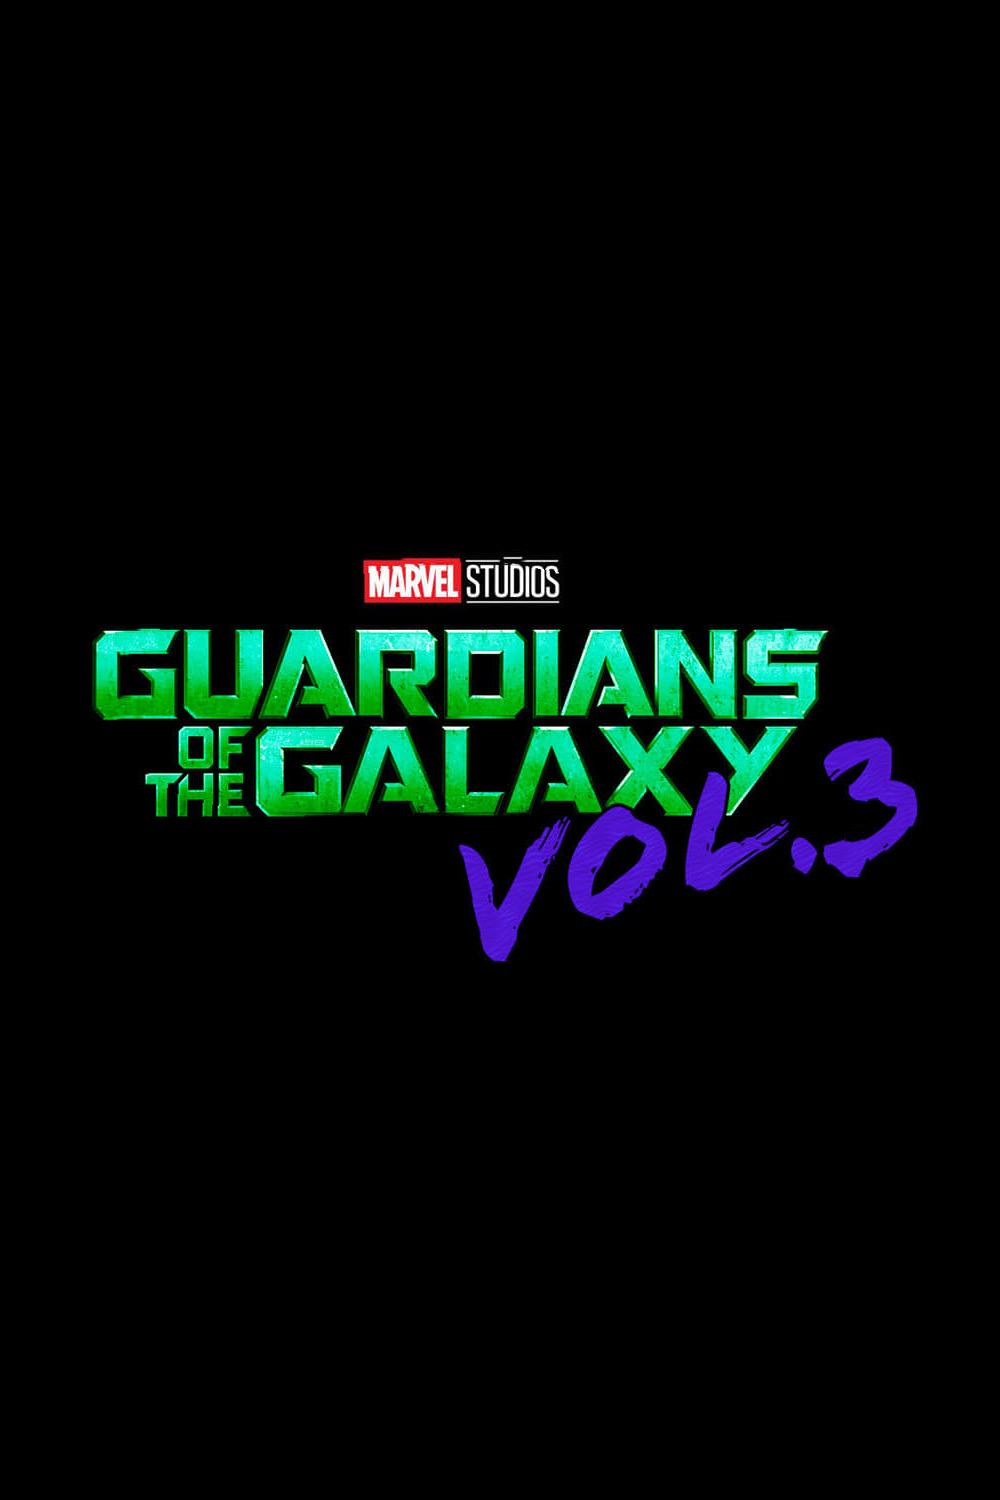 Guardians of the Galaxy Vol. 3 Title Card